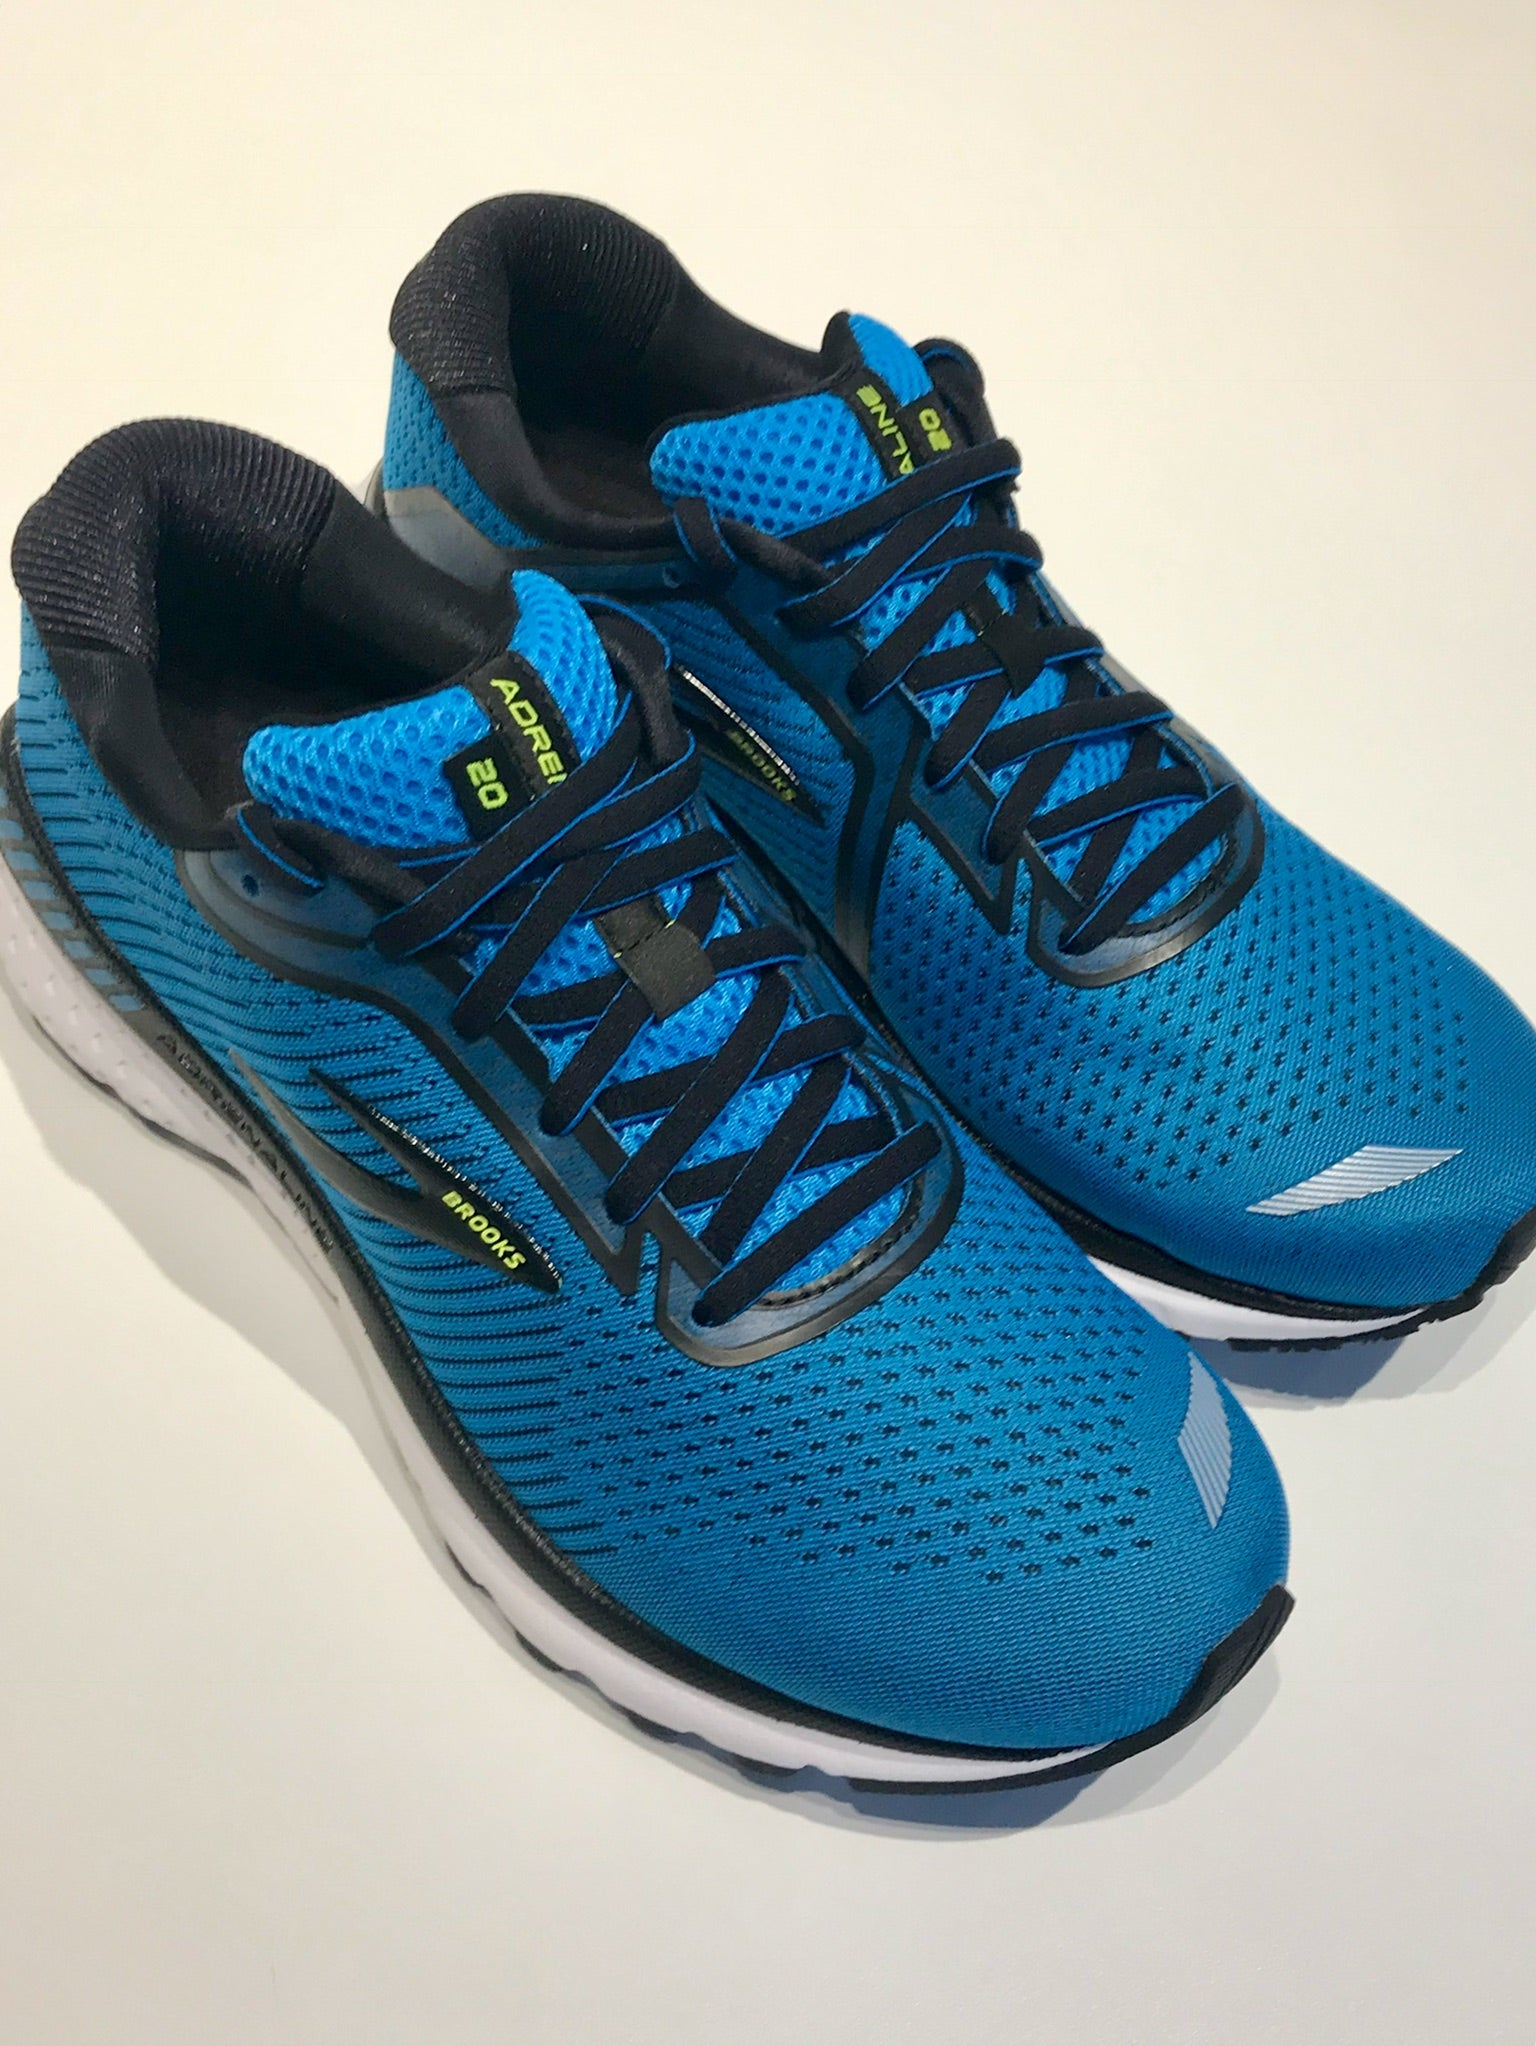 Mens Brooks Adrenaline GTS 20 Running Shoes Blue/Black